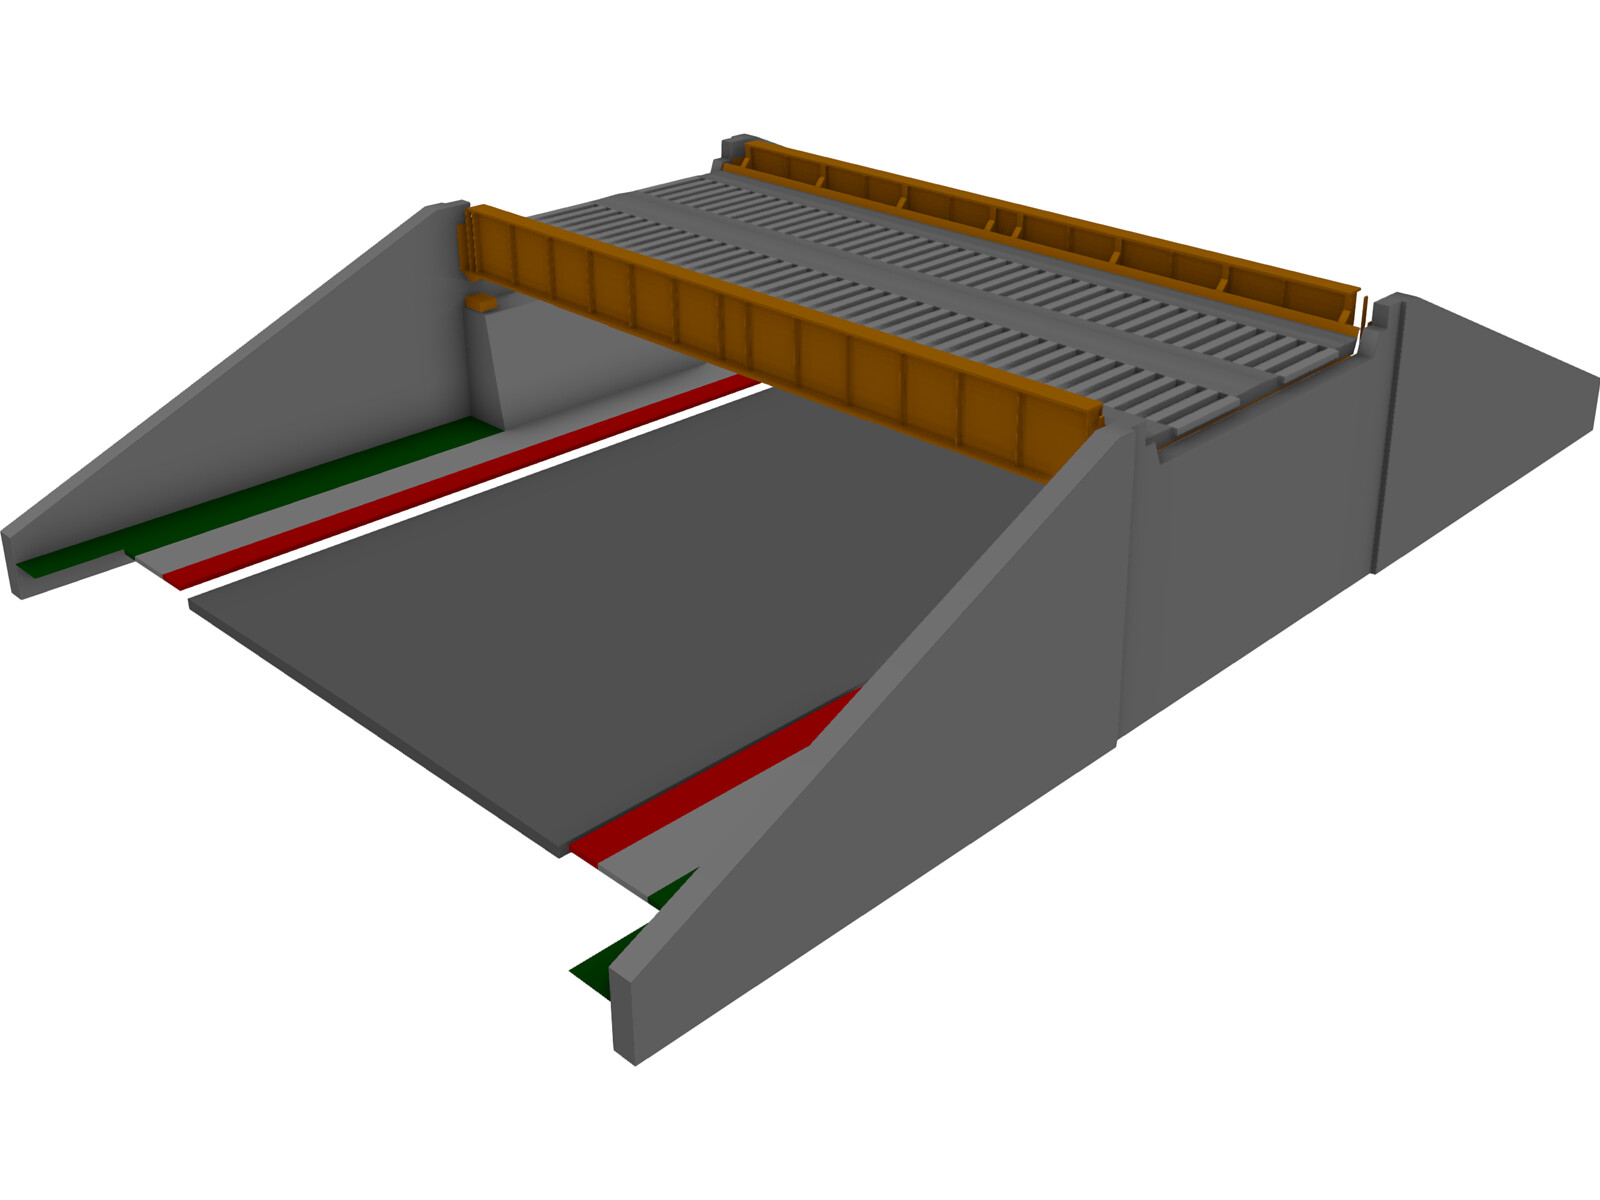 Thru Plate Girder Bridge 3D Model